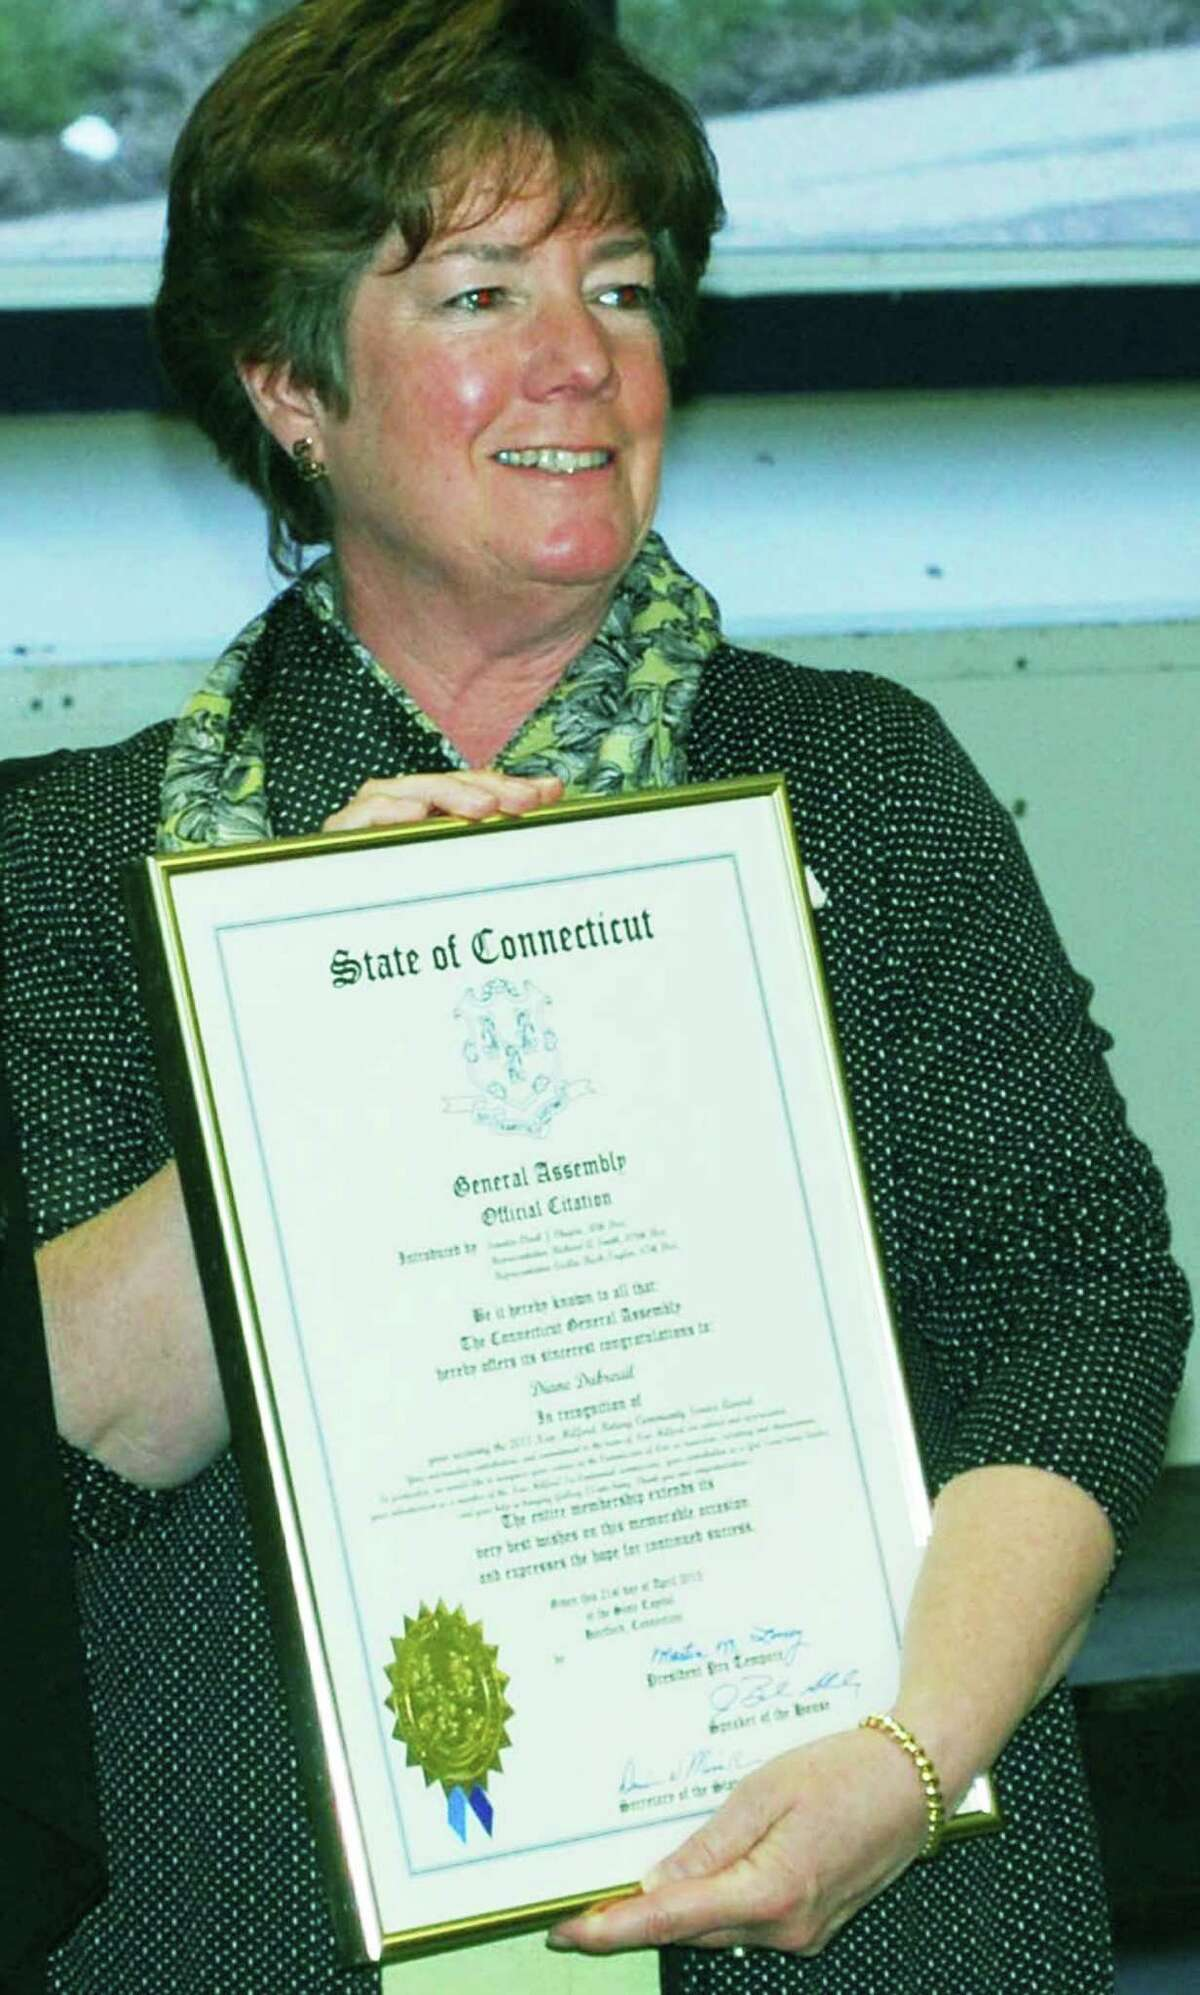 New Milford resident Diane Dubreuil is presented a certificate of recognition from the state General Assembly during a recent Rotary Club lunch, at which she was also honored with its community service award.